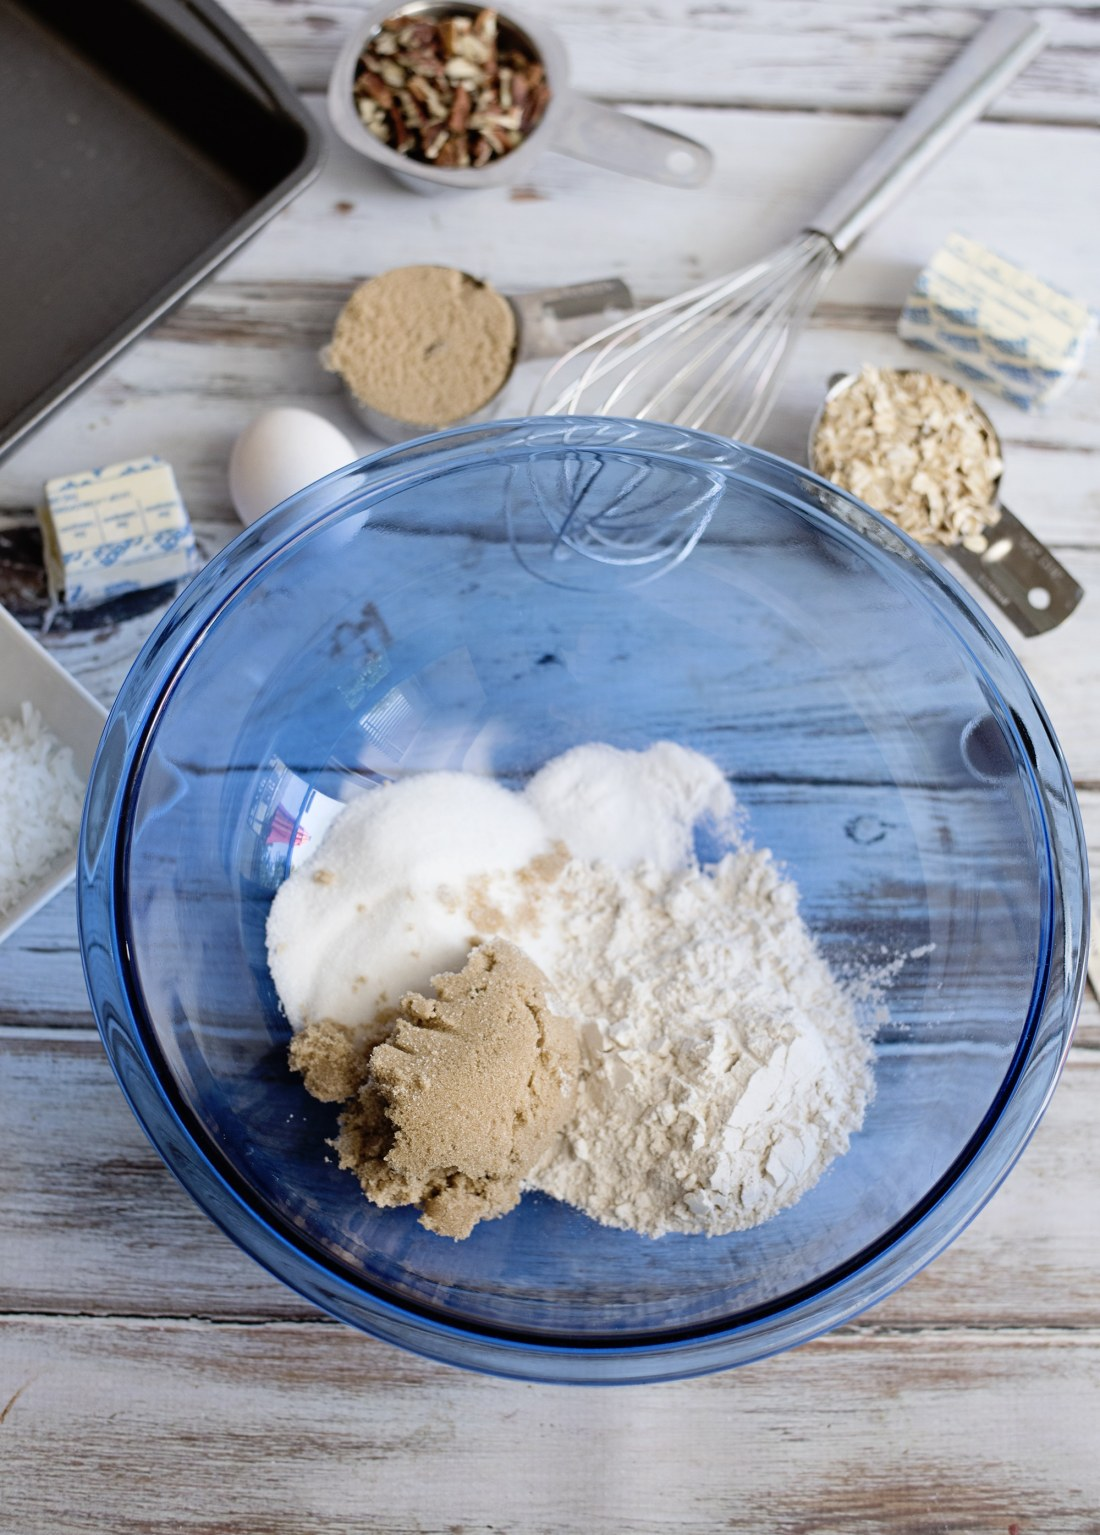 Oatmeal Cake with Coconut Pecan Frosting Step 1 place sugars in bowl. Fill your home with the smell of an easy to make Grandma's recipe Oatmeal Cake with Coconut Pecan Frosting.